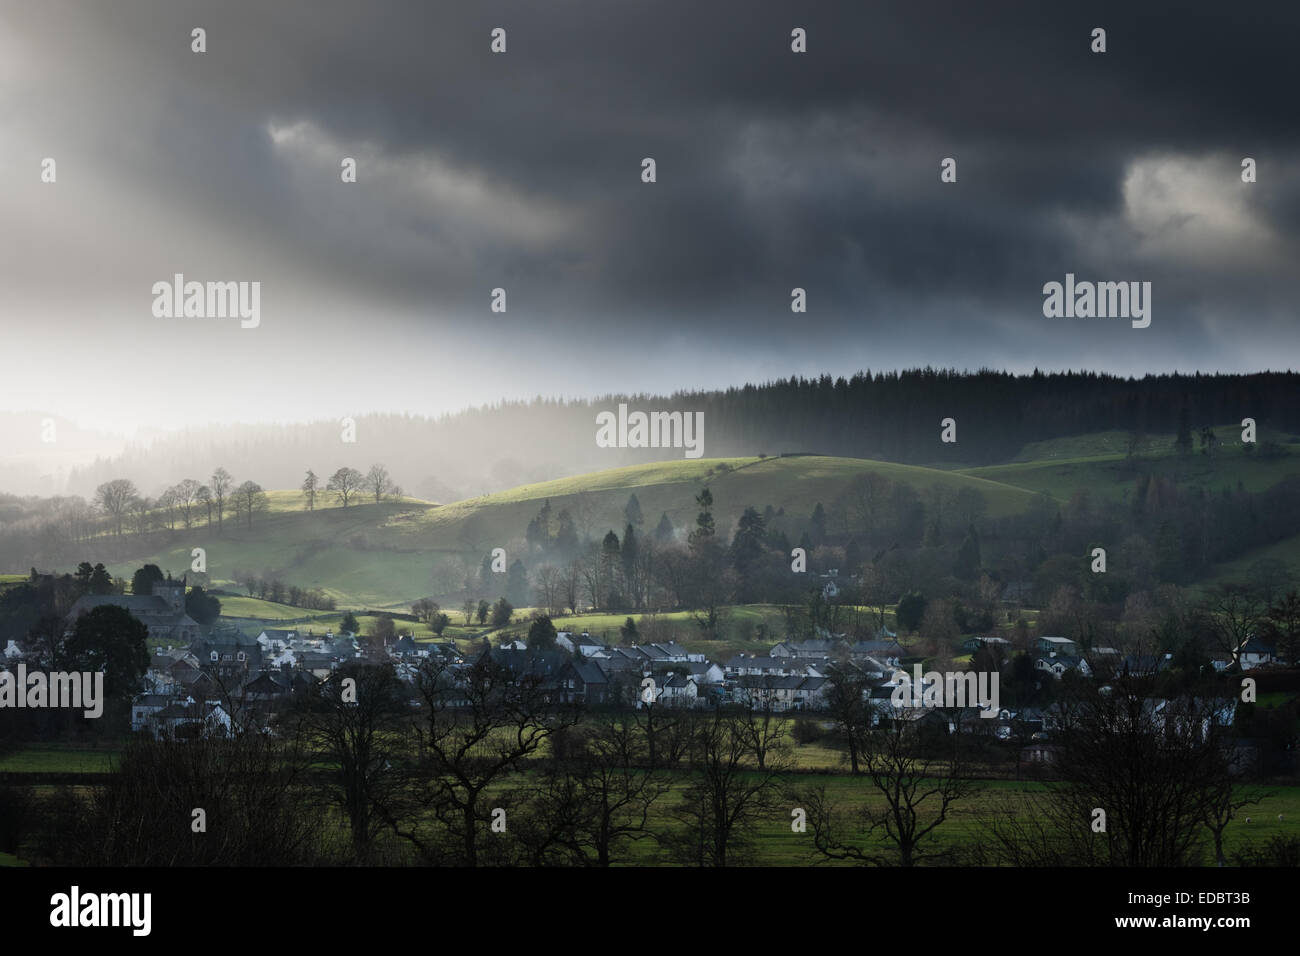 Soleil d'hiver par des nuages sombres pour illuminer le Lake District village de Hawkshead Photo Stock